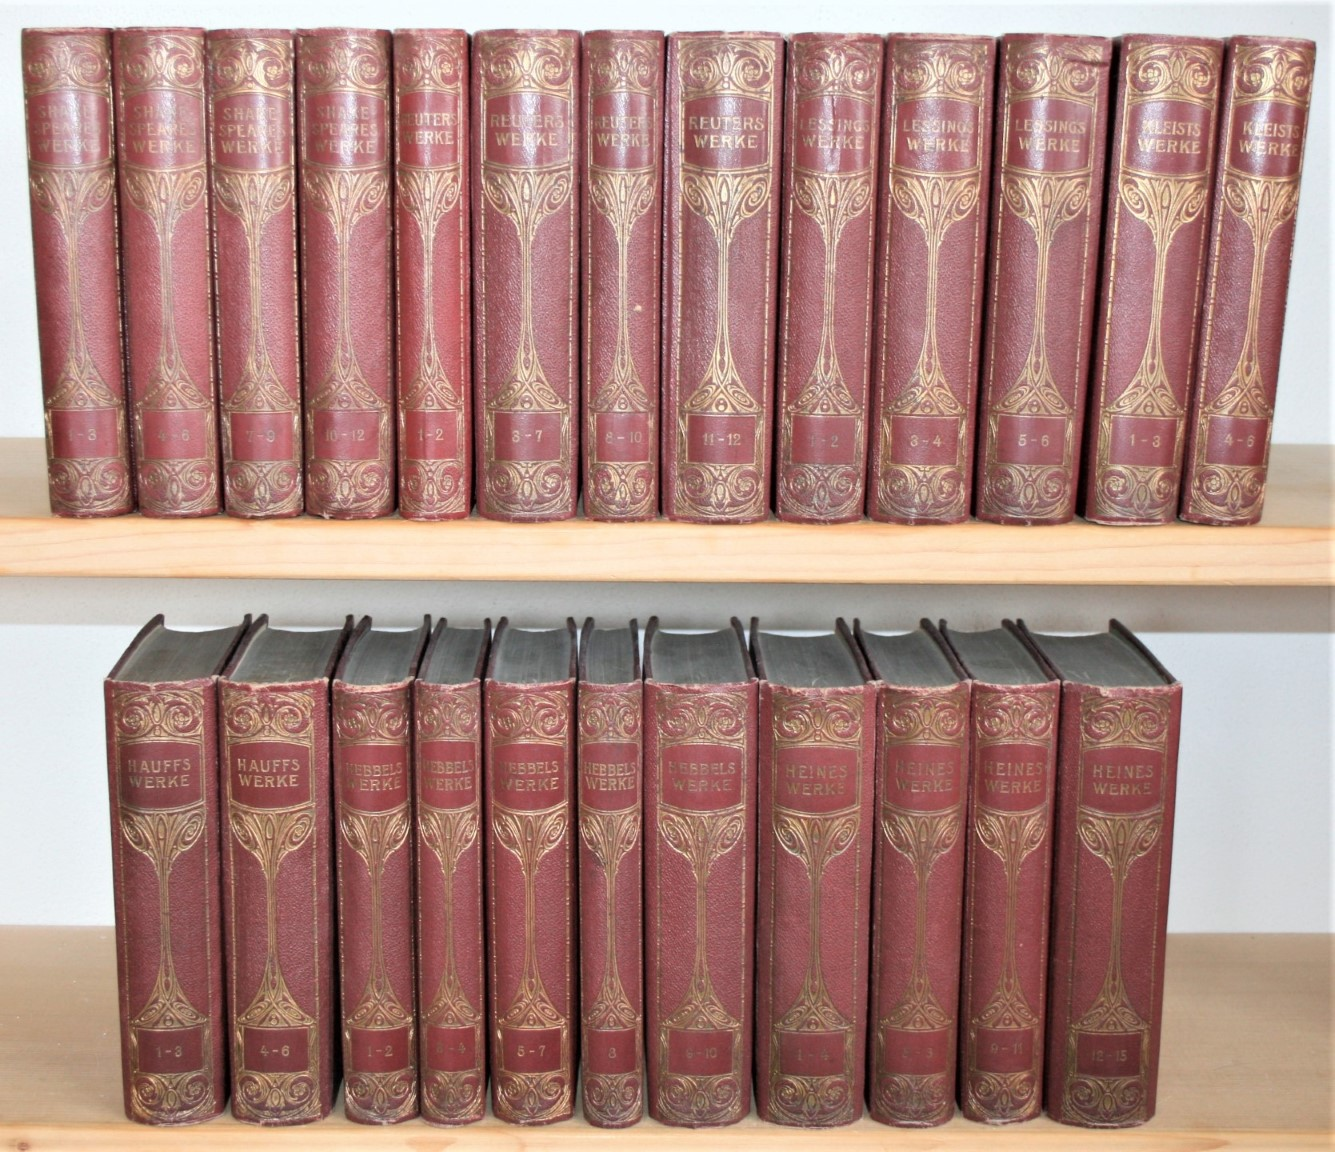 24 Bände: Shakespeares (1-12), Reuters (1-12), Lessings: Shakespeare, William, Fritz